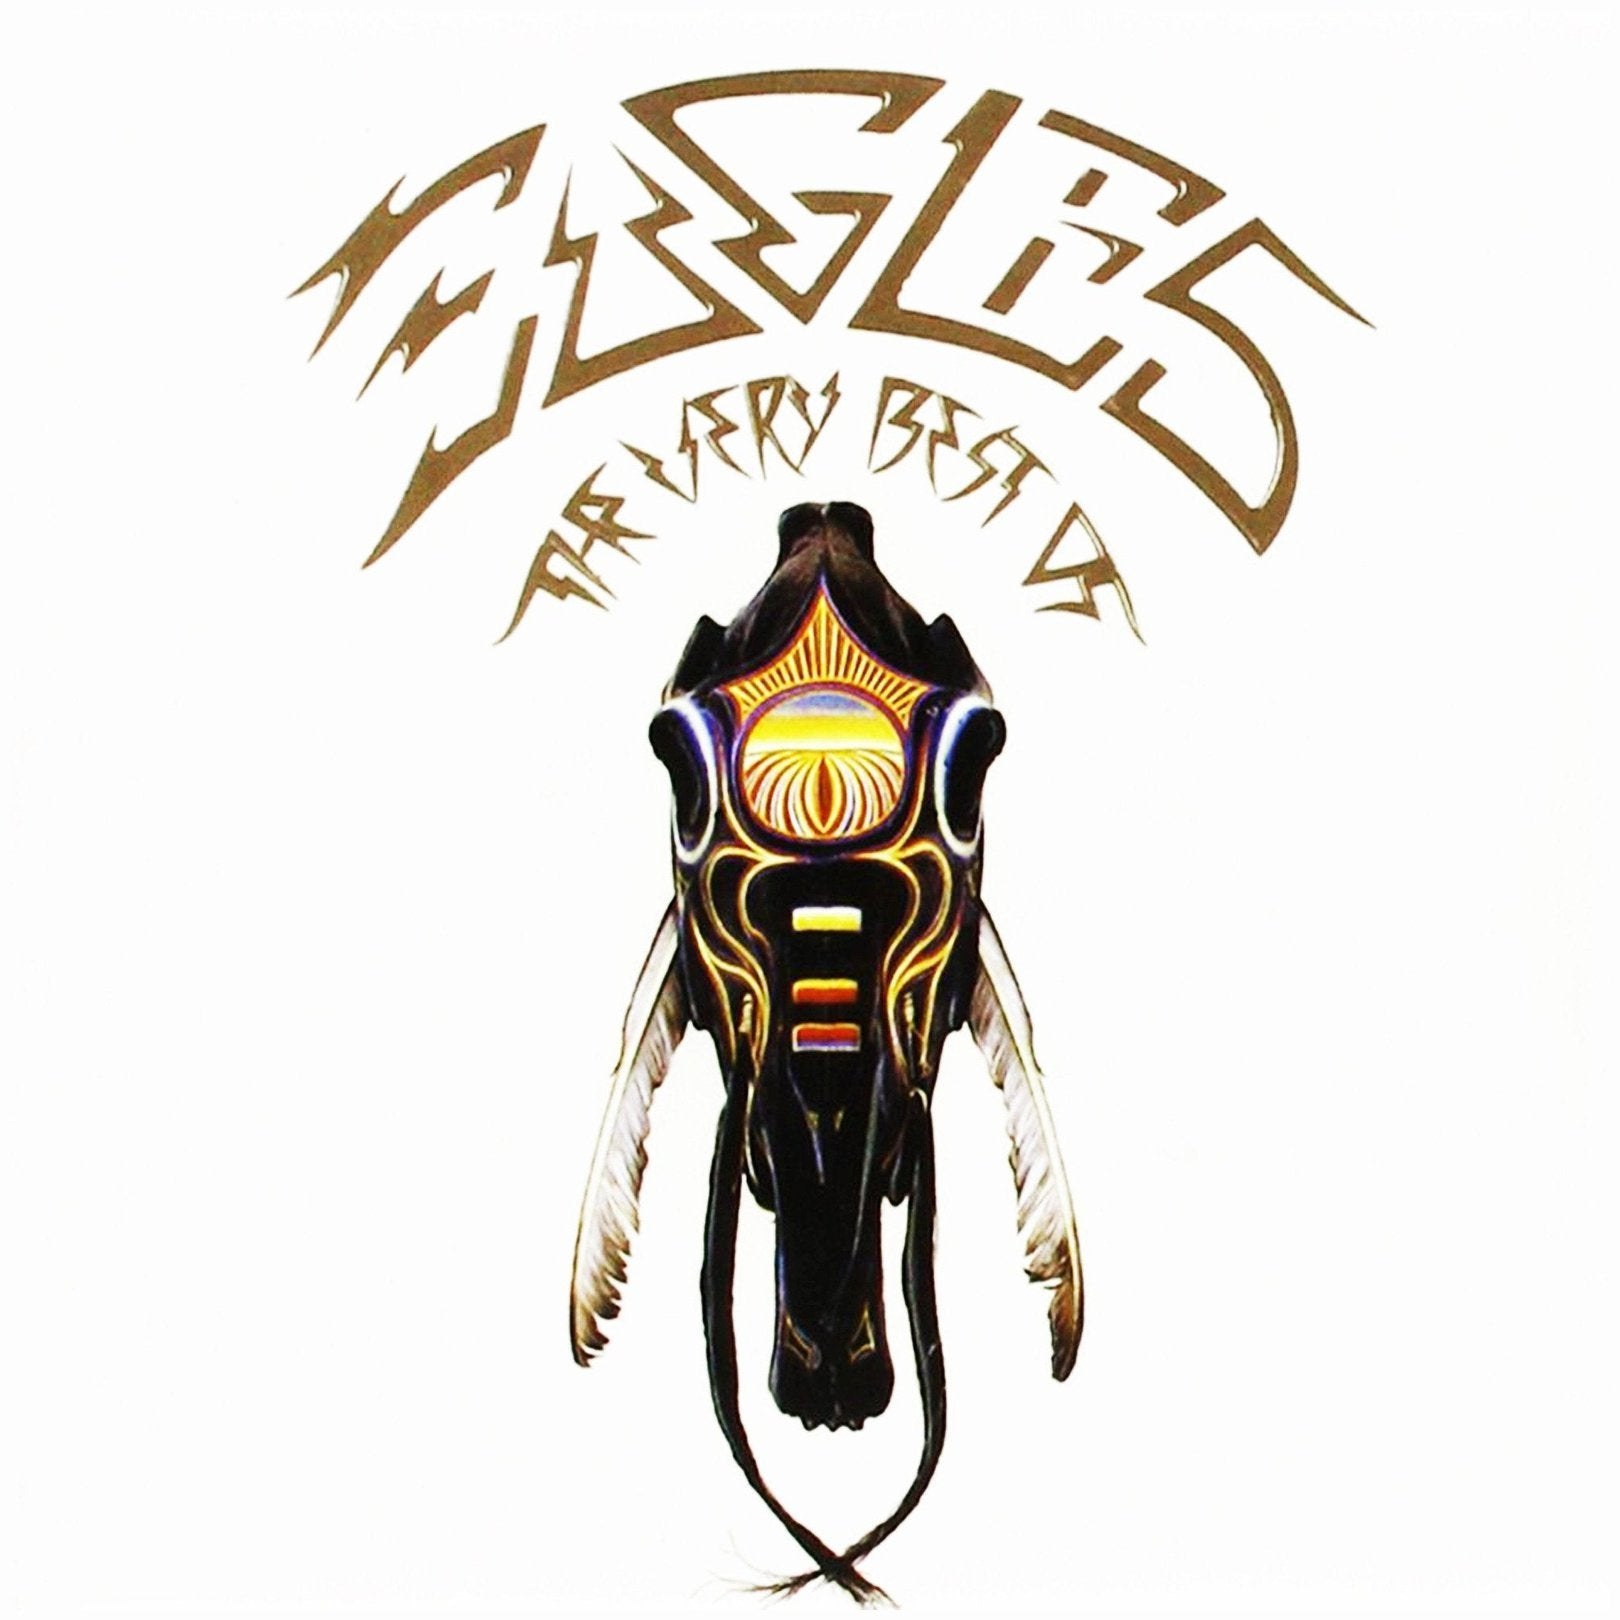 The Complete Greatest Hits America: Eagles Eagles Records, LPs, Vinyl And CDs